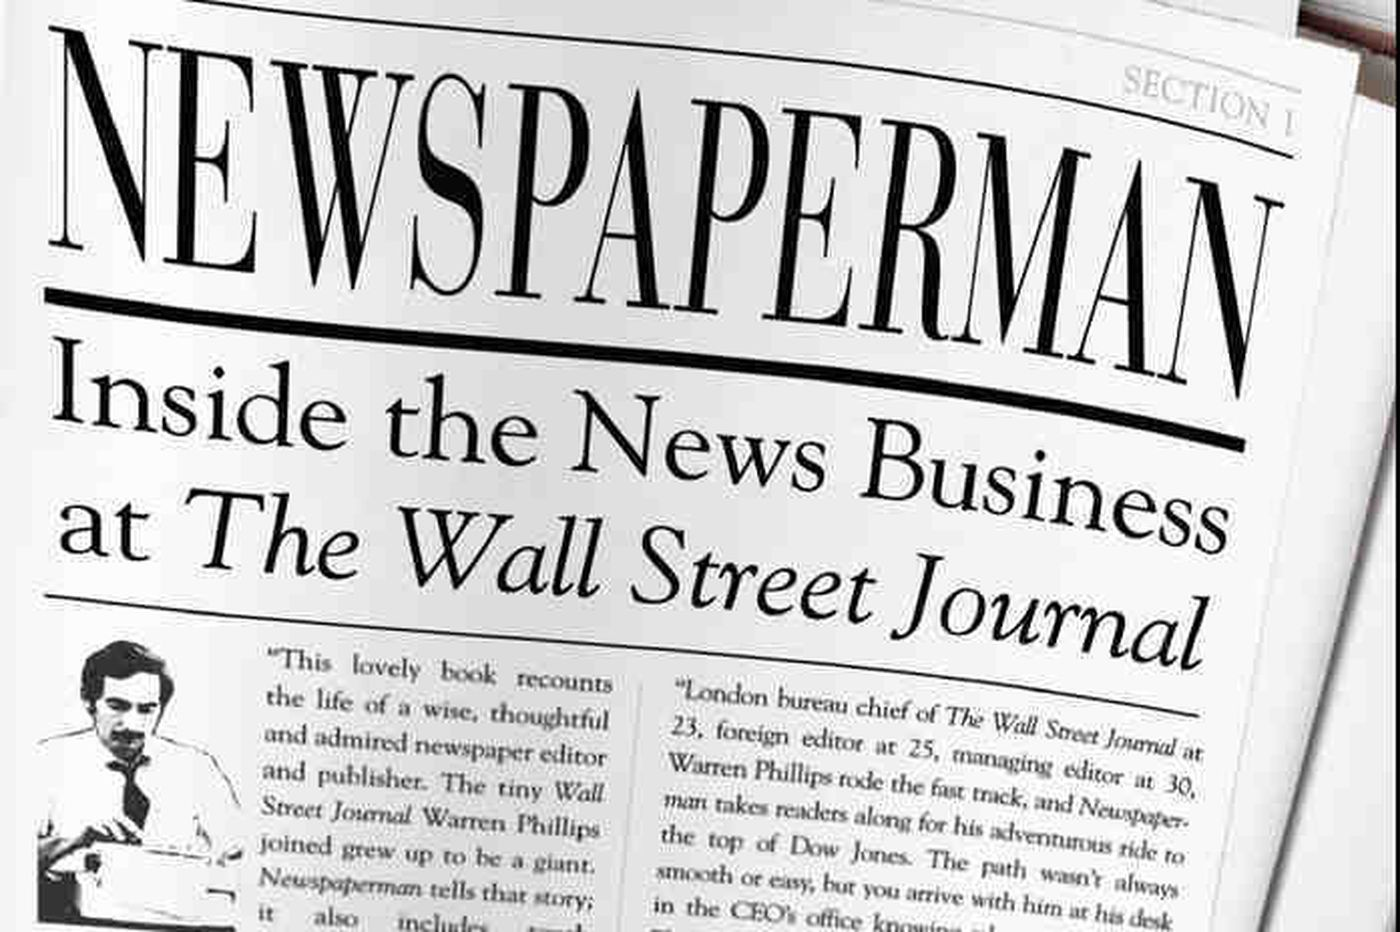 'Newspaperman': A story of success at the Wall Street Journal